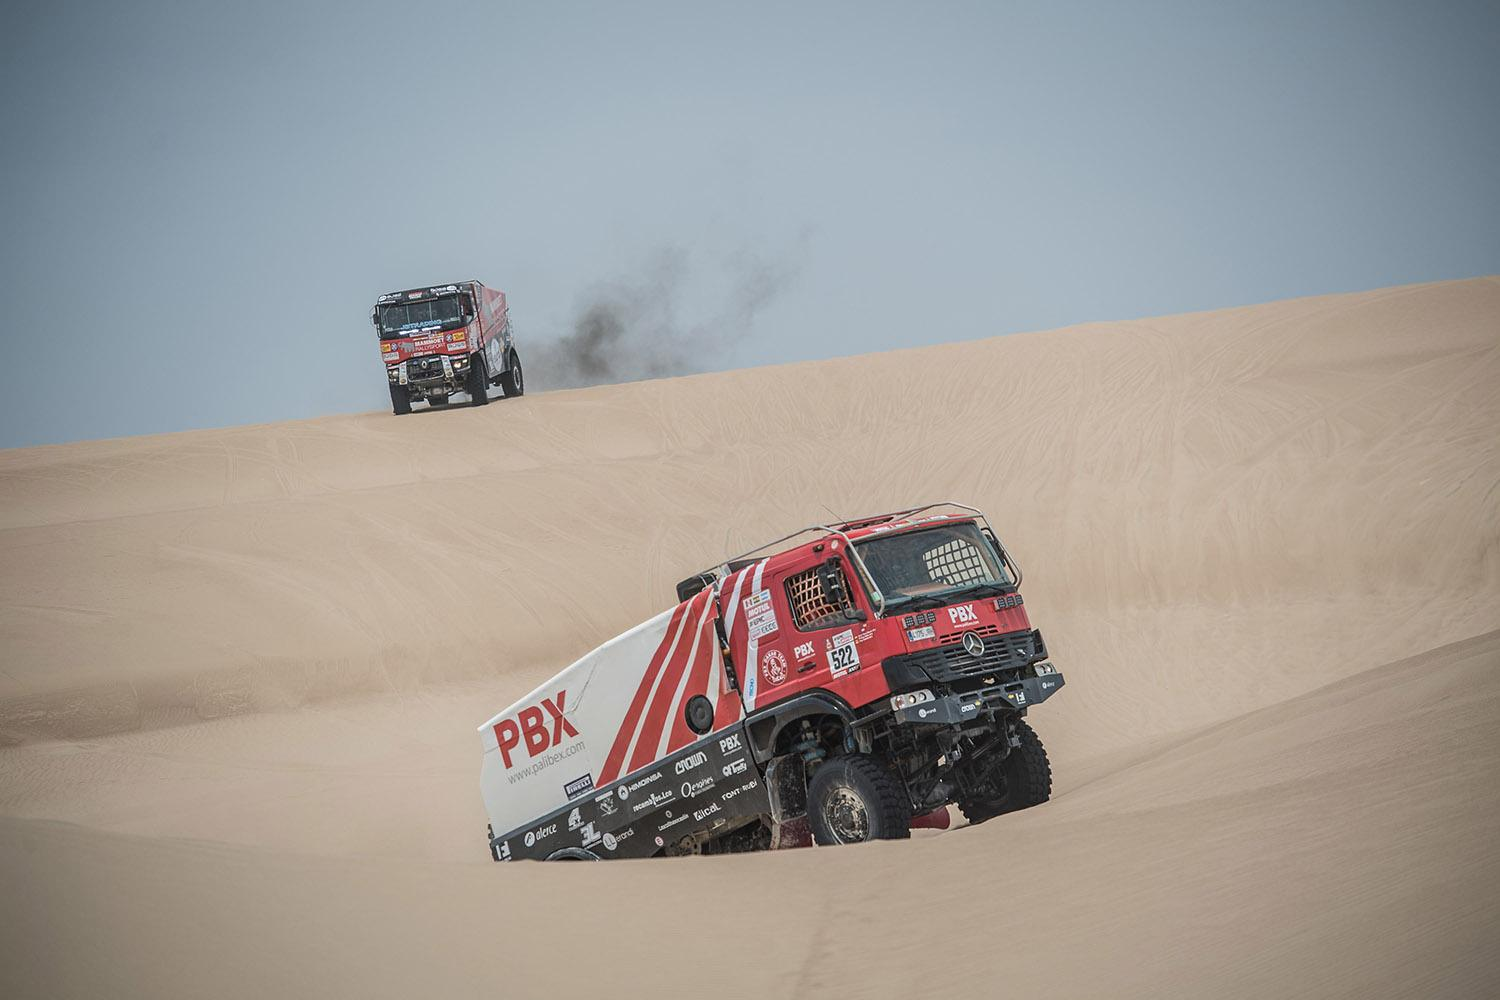 522-2018-01-07-PBX DAKAR 2018 TEAM (1)